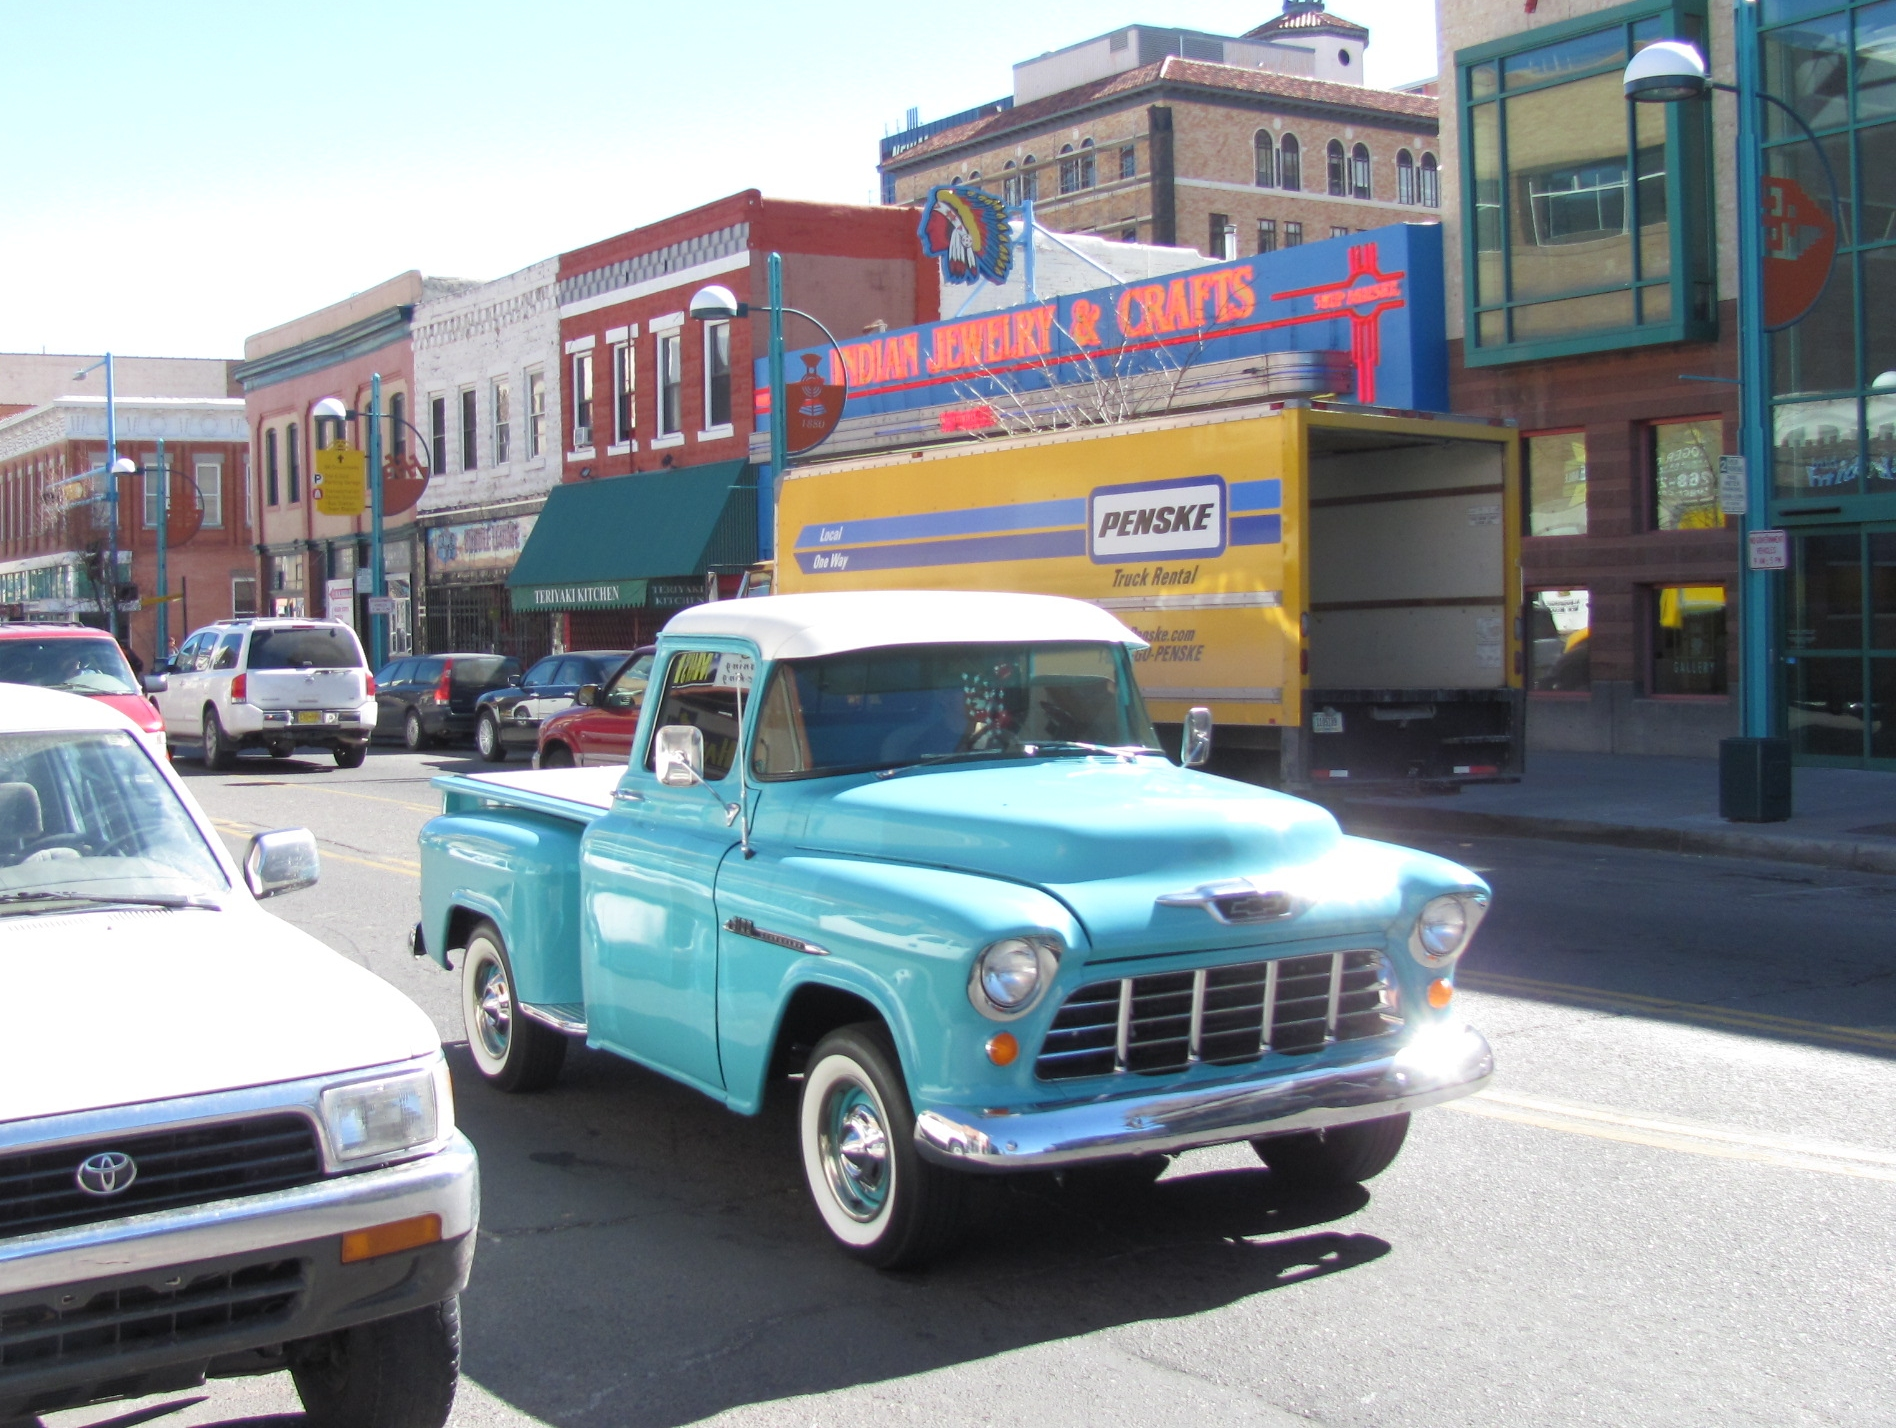 file chevy pickup central ave albuquerque wikimedia commons. Black Bedroom Furniture Sets. Home Design Ideas